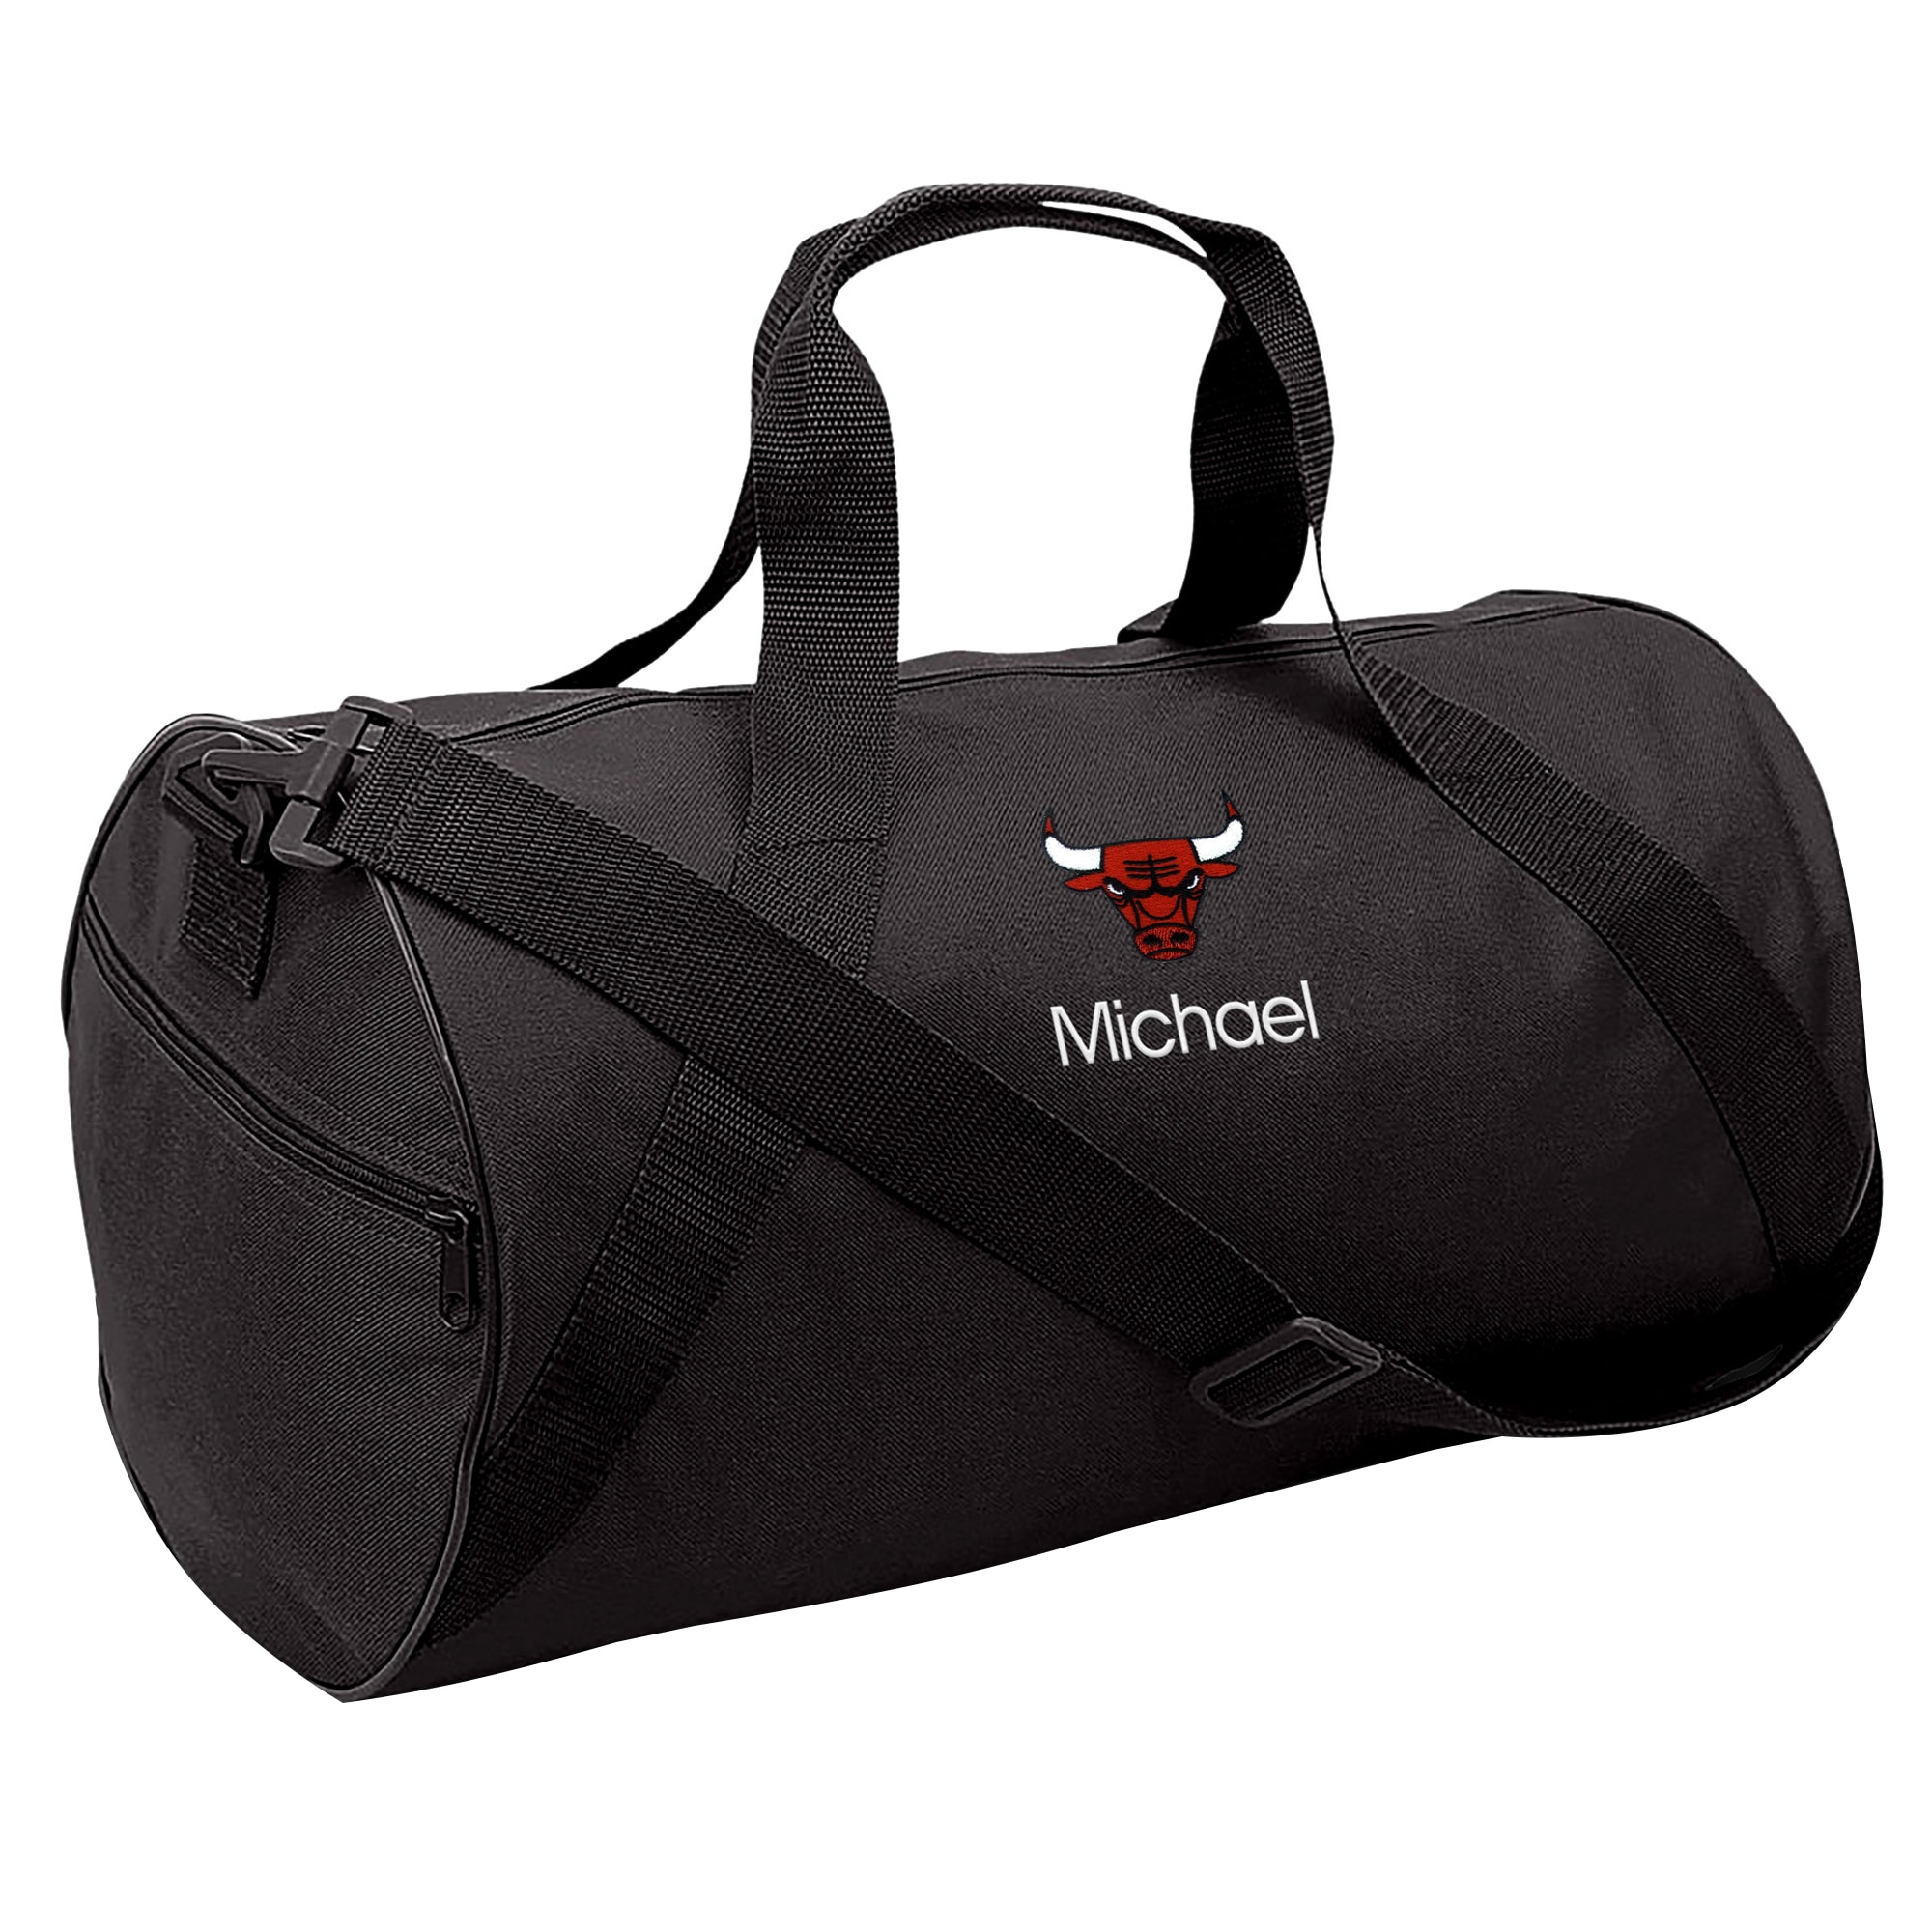 Chicago Bulls Youth Personalized Duffle Bag - Black